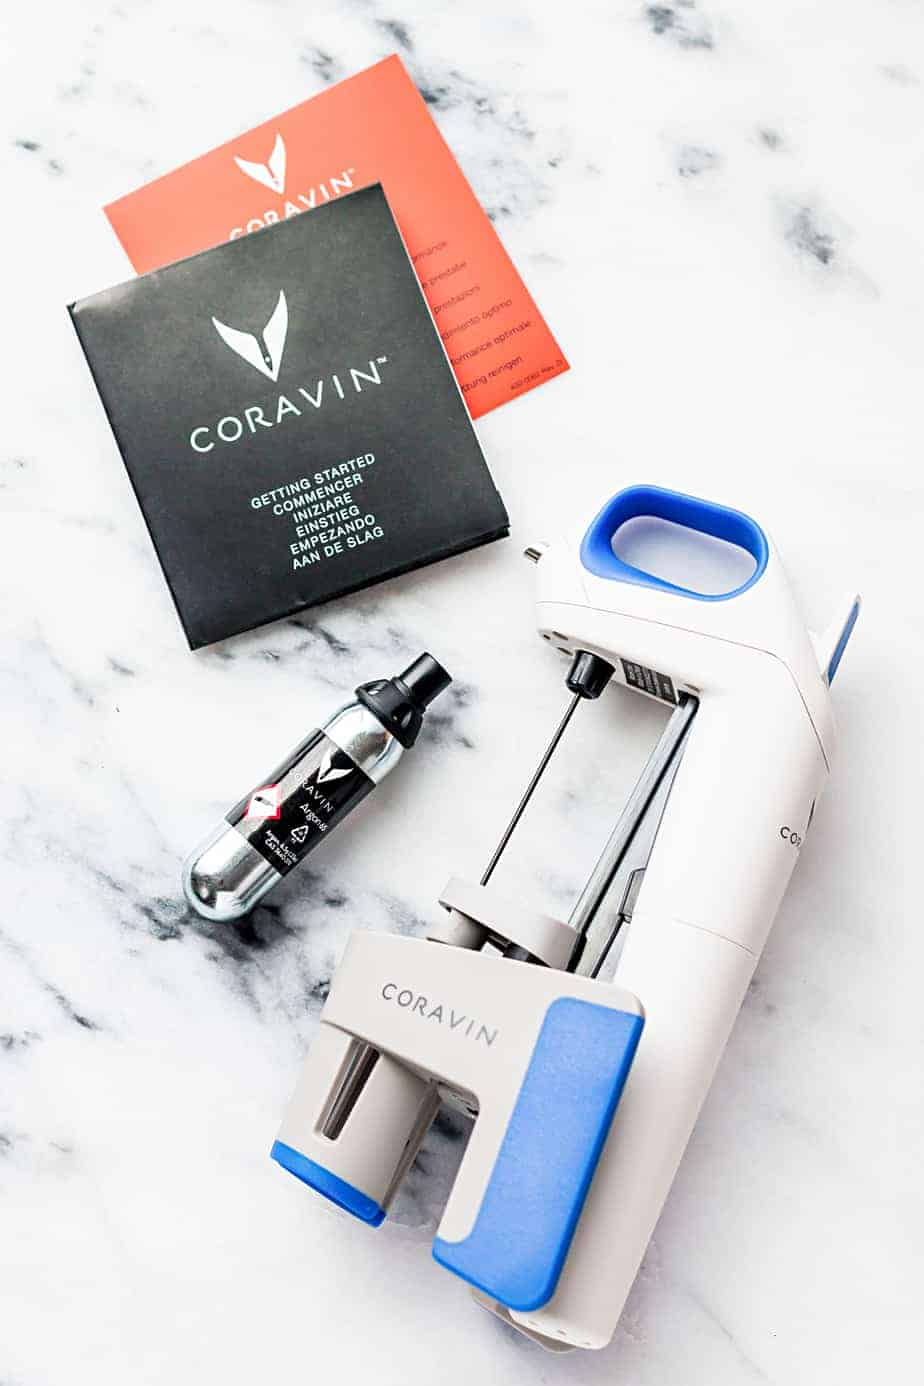 CORAVIN MODEAL ONE WINE SYSTEM